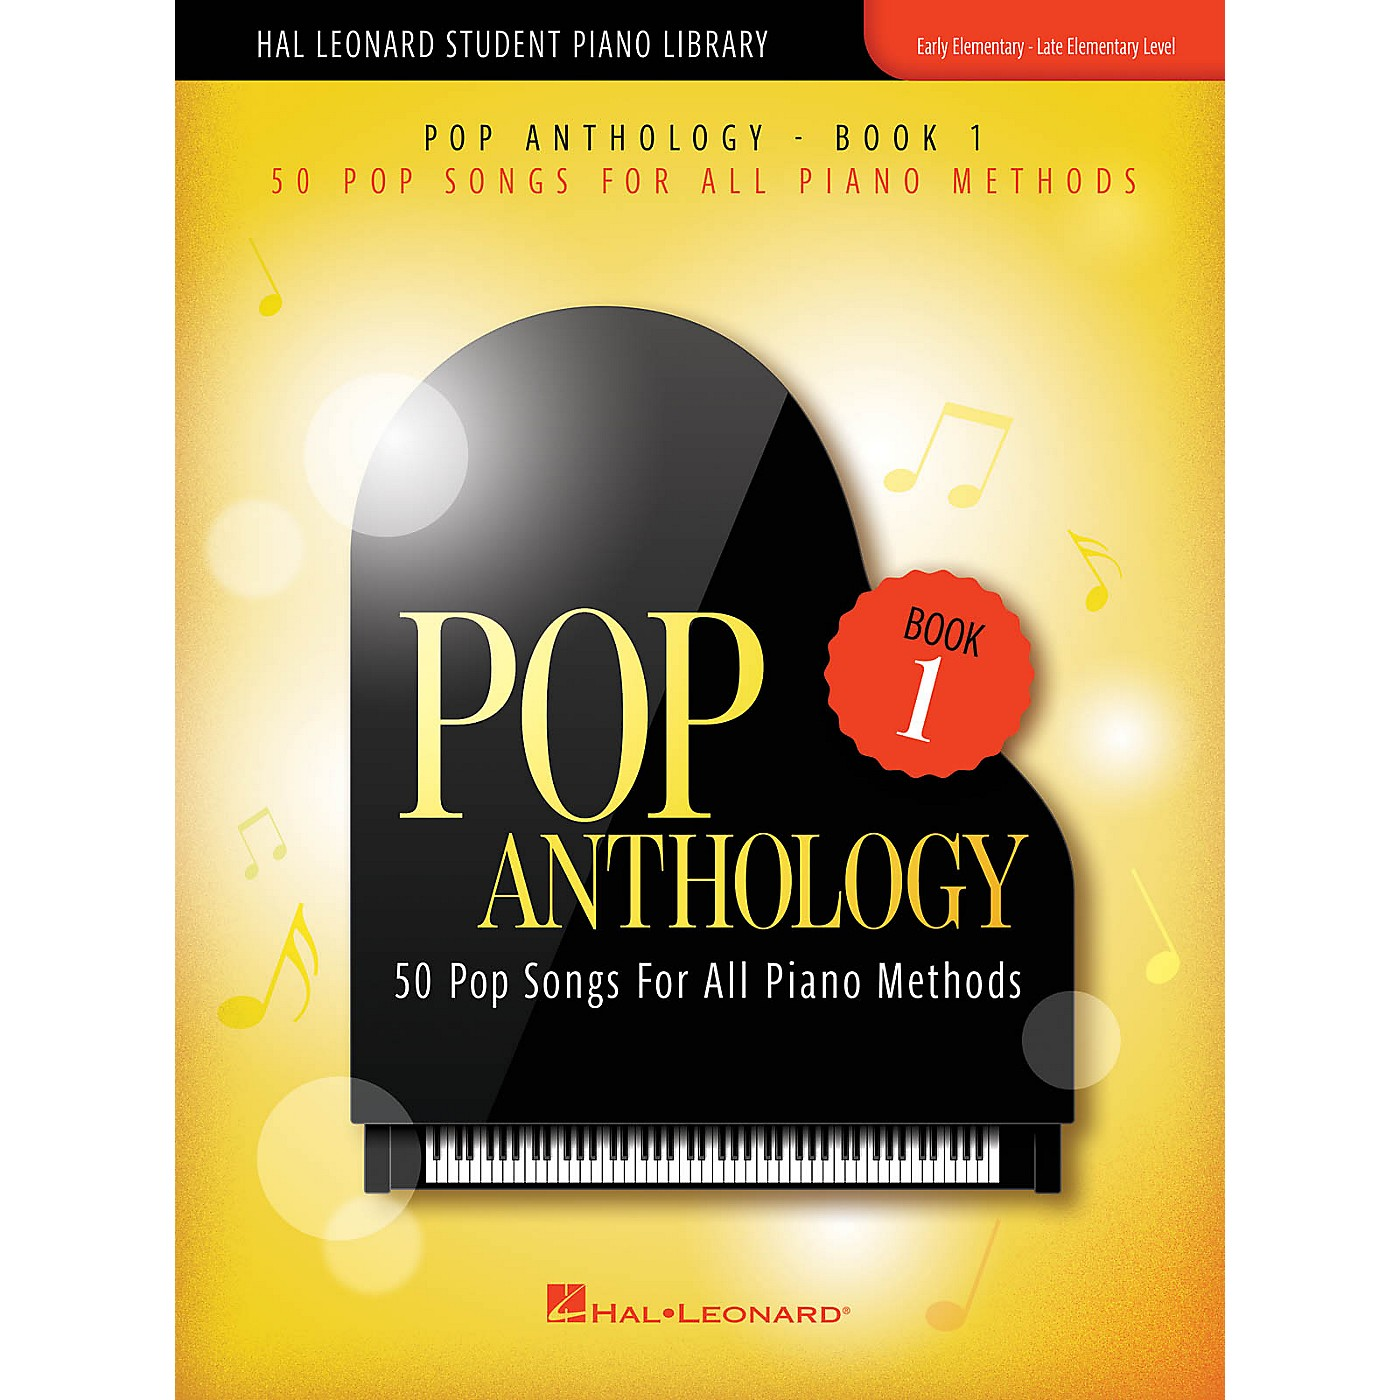 Hal Leonard Pop Anthology - Book 2 (50 Pop Songs for All Piano Methods) Early Intermediate to Late Intermediate thumbnail